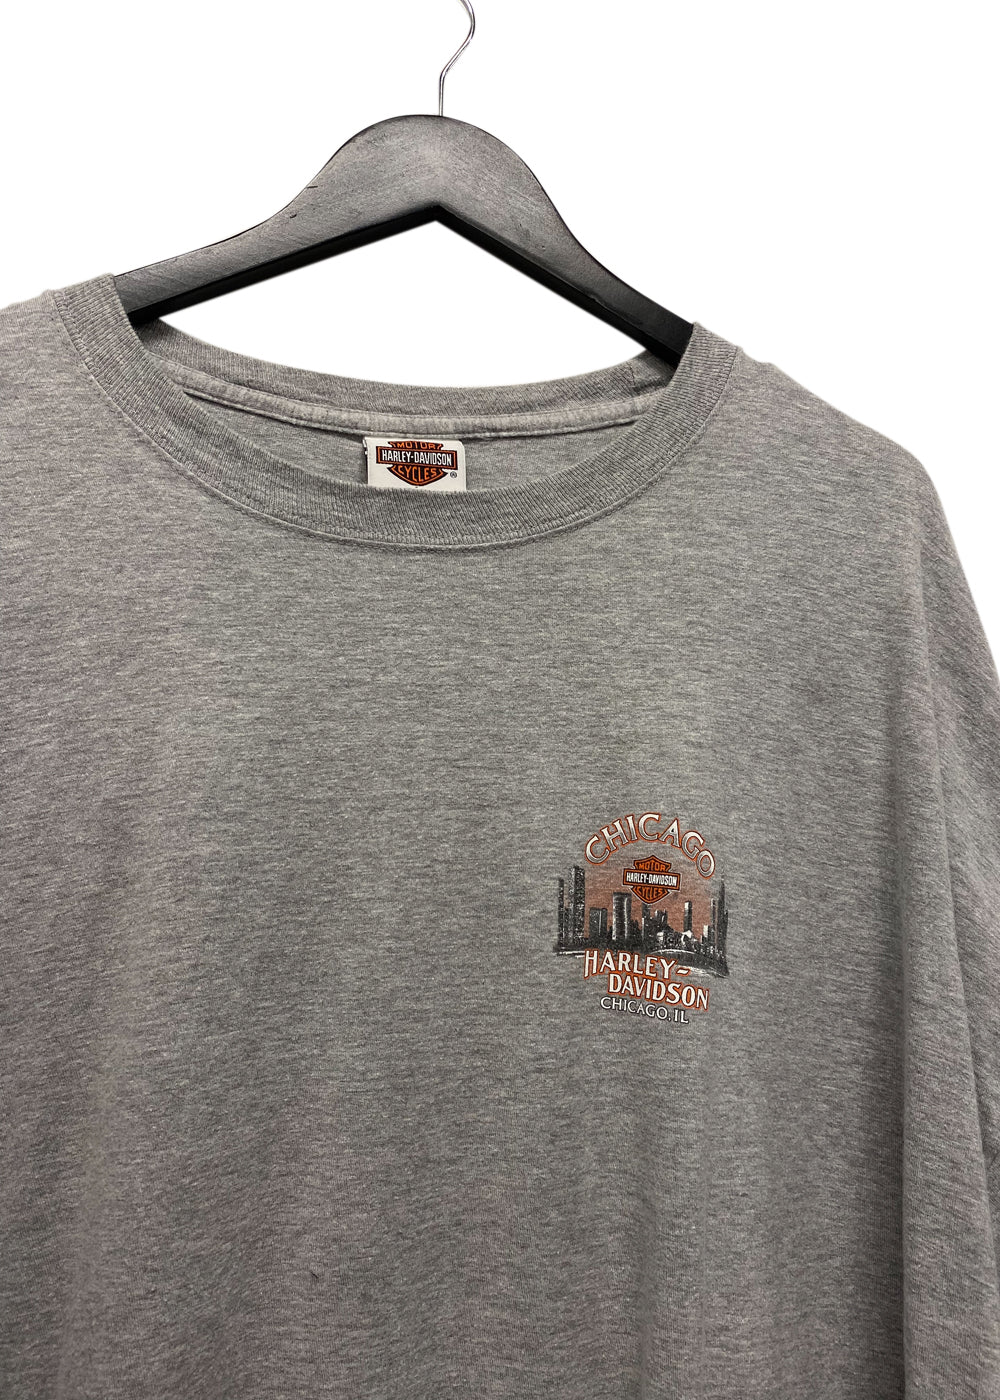 LED ZEPPELIN 'ICARUS' COLLECTOR TEE